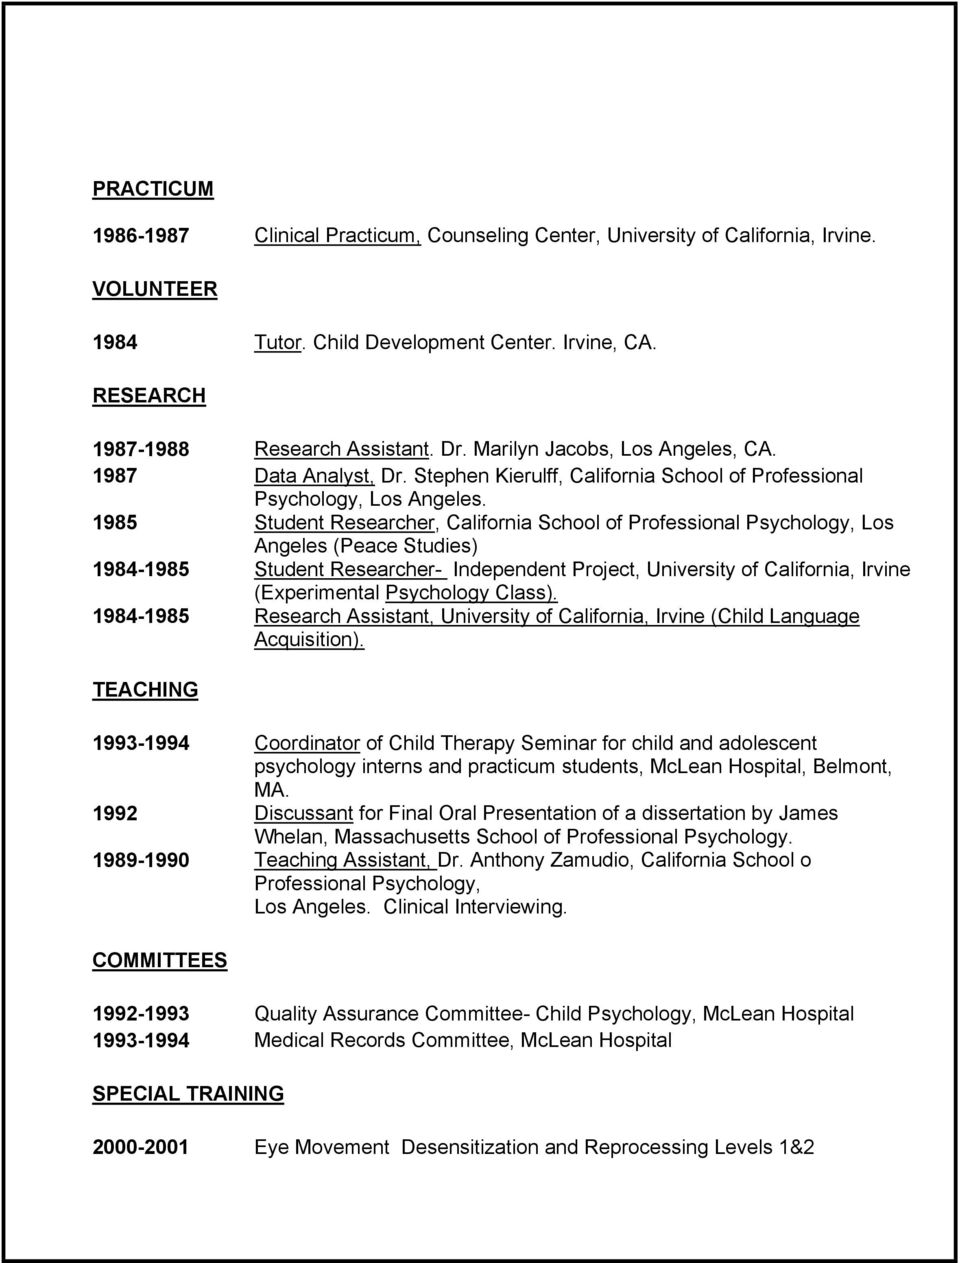 1985 Student Researcher, California School of Professional Psychology, Los Angeles (Peace Studies) 1984-1985 Student Researcher- Independent Project, University of California, Irvine (Experimental